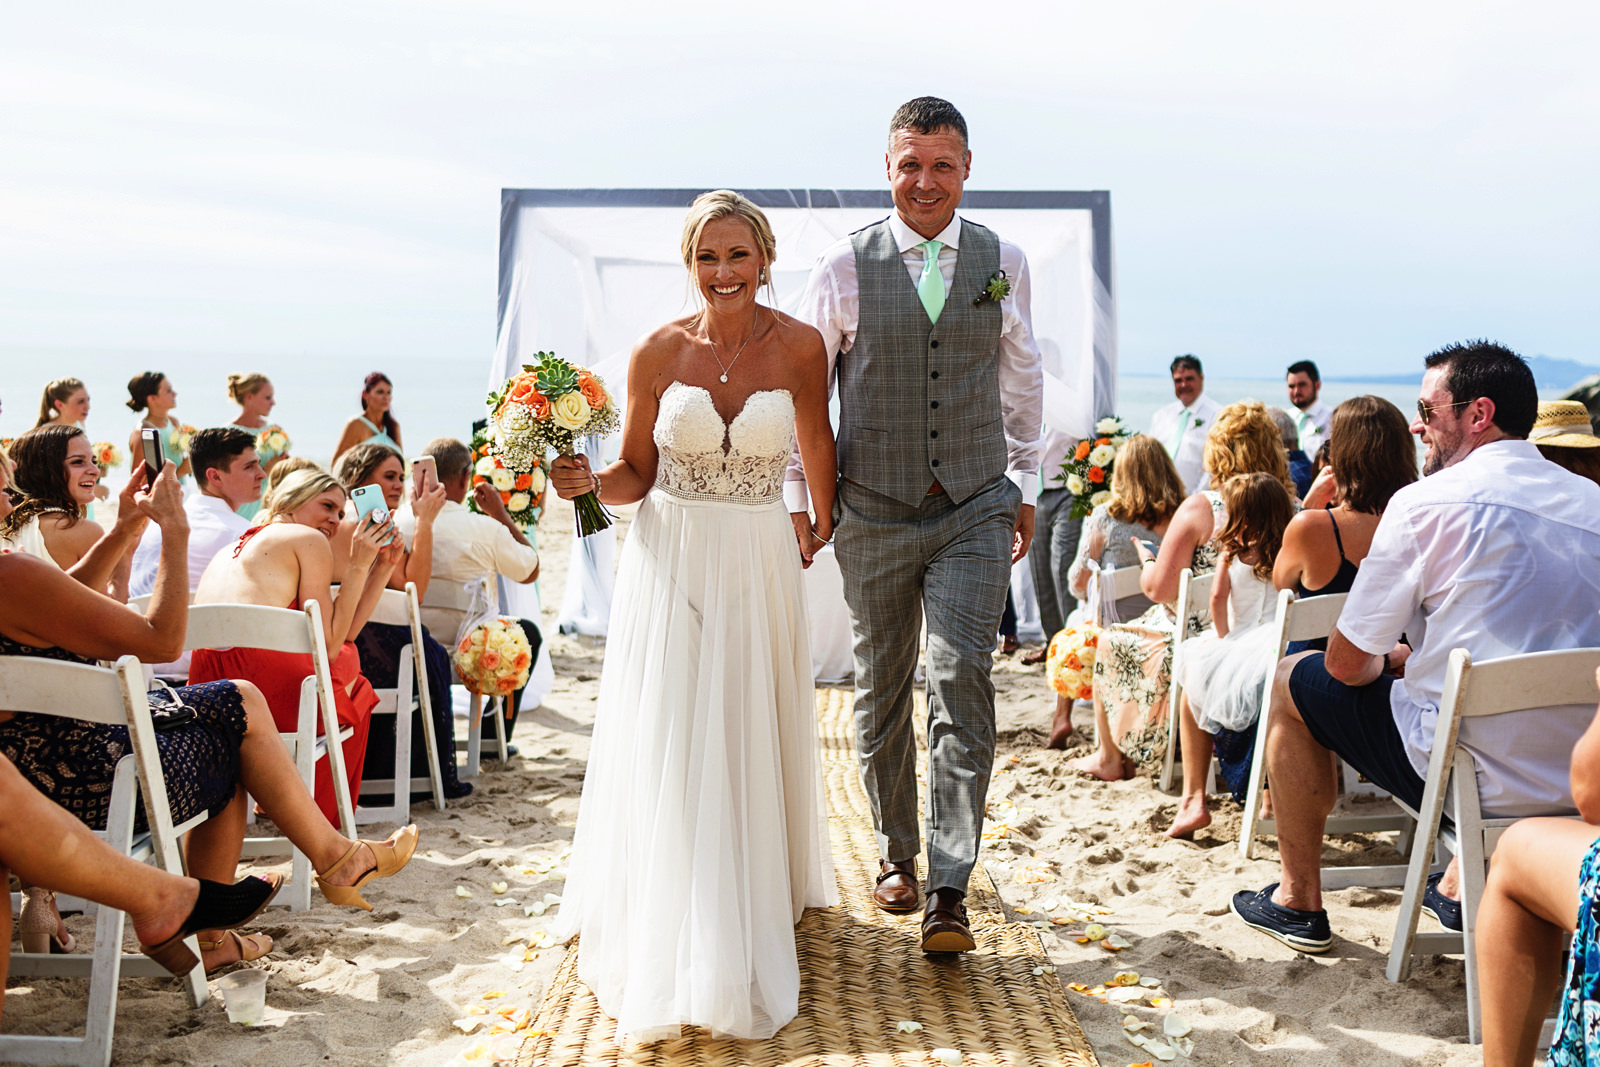 Bride and groom walk out their beach wedding ceremony in Mexico